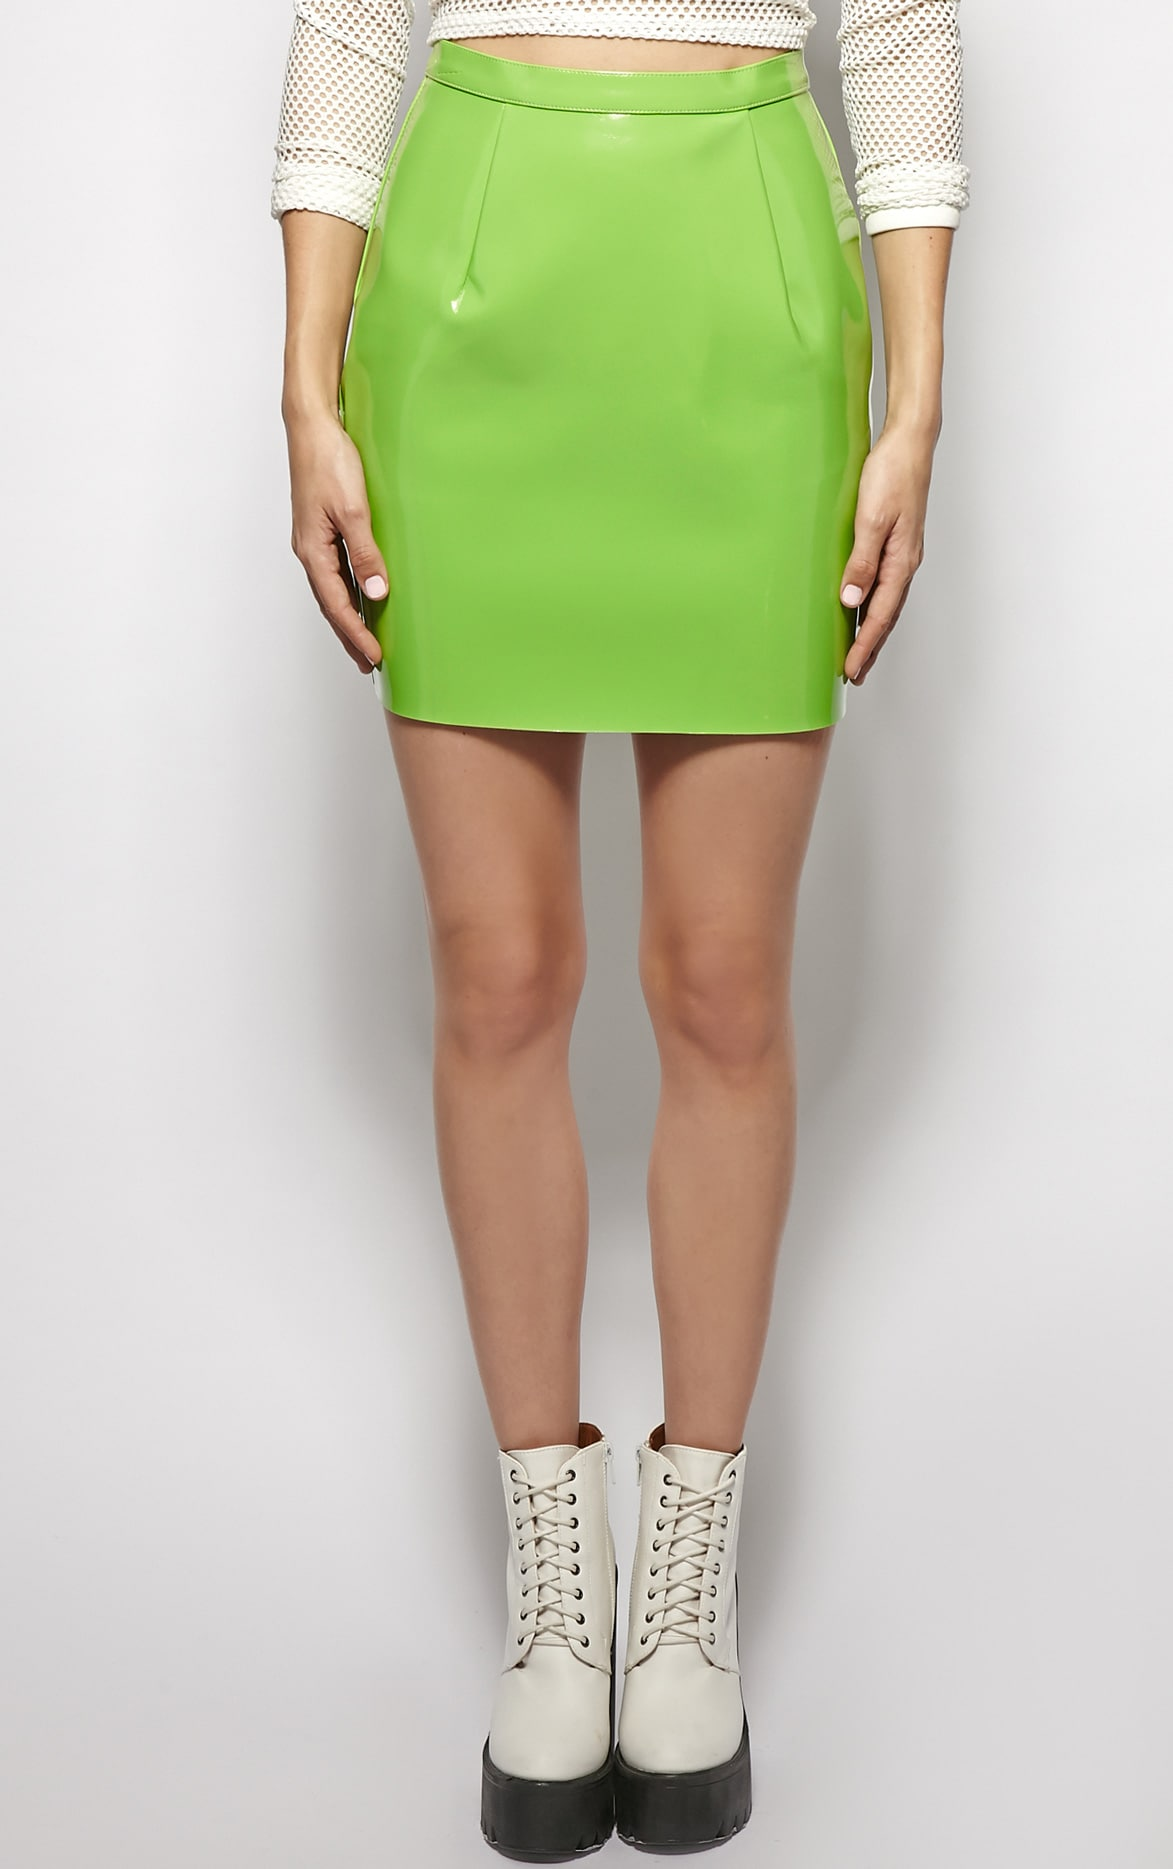 Natalya Green PVC Mini Skirt 3